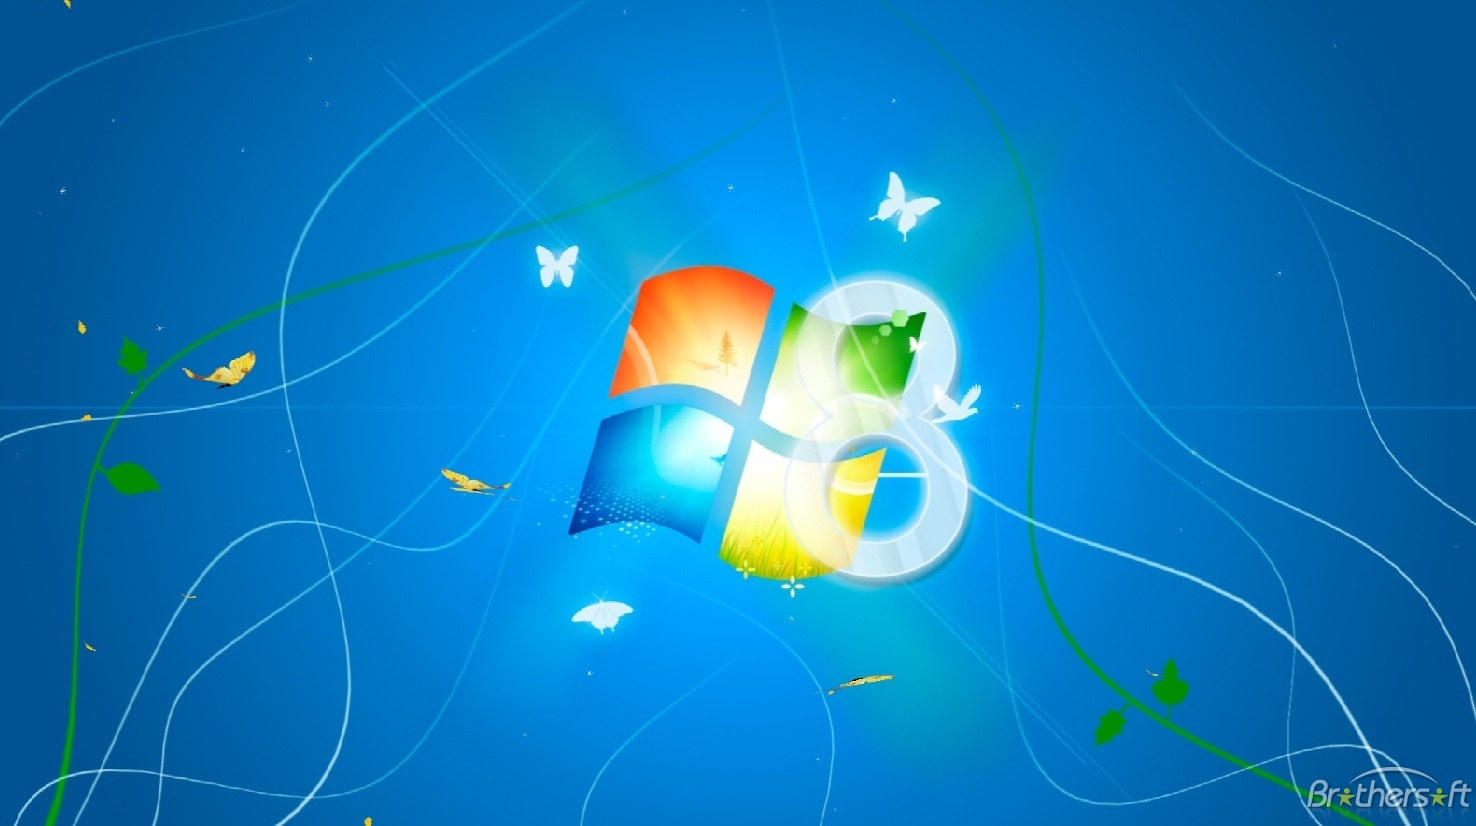 Windows 8 Light Animated Wallpaper Windows 8 Light Animated Wallpaper 1476x826